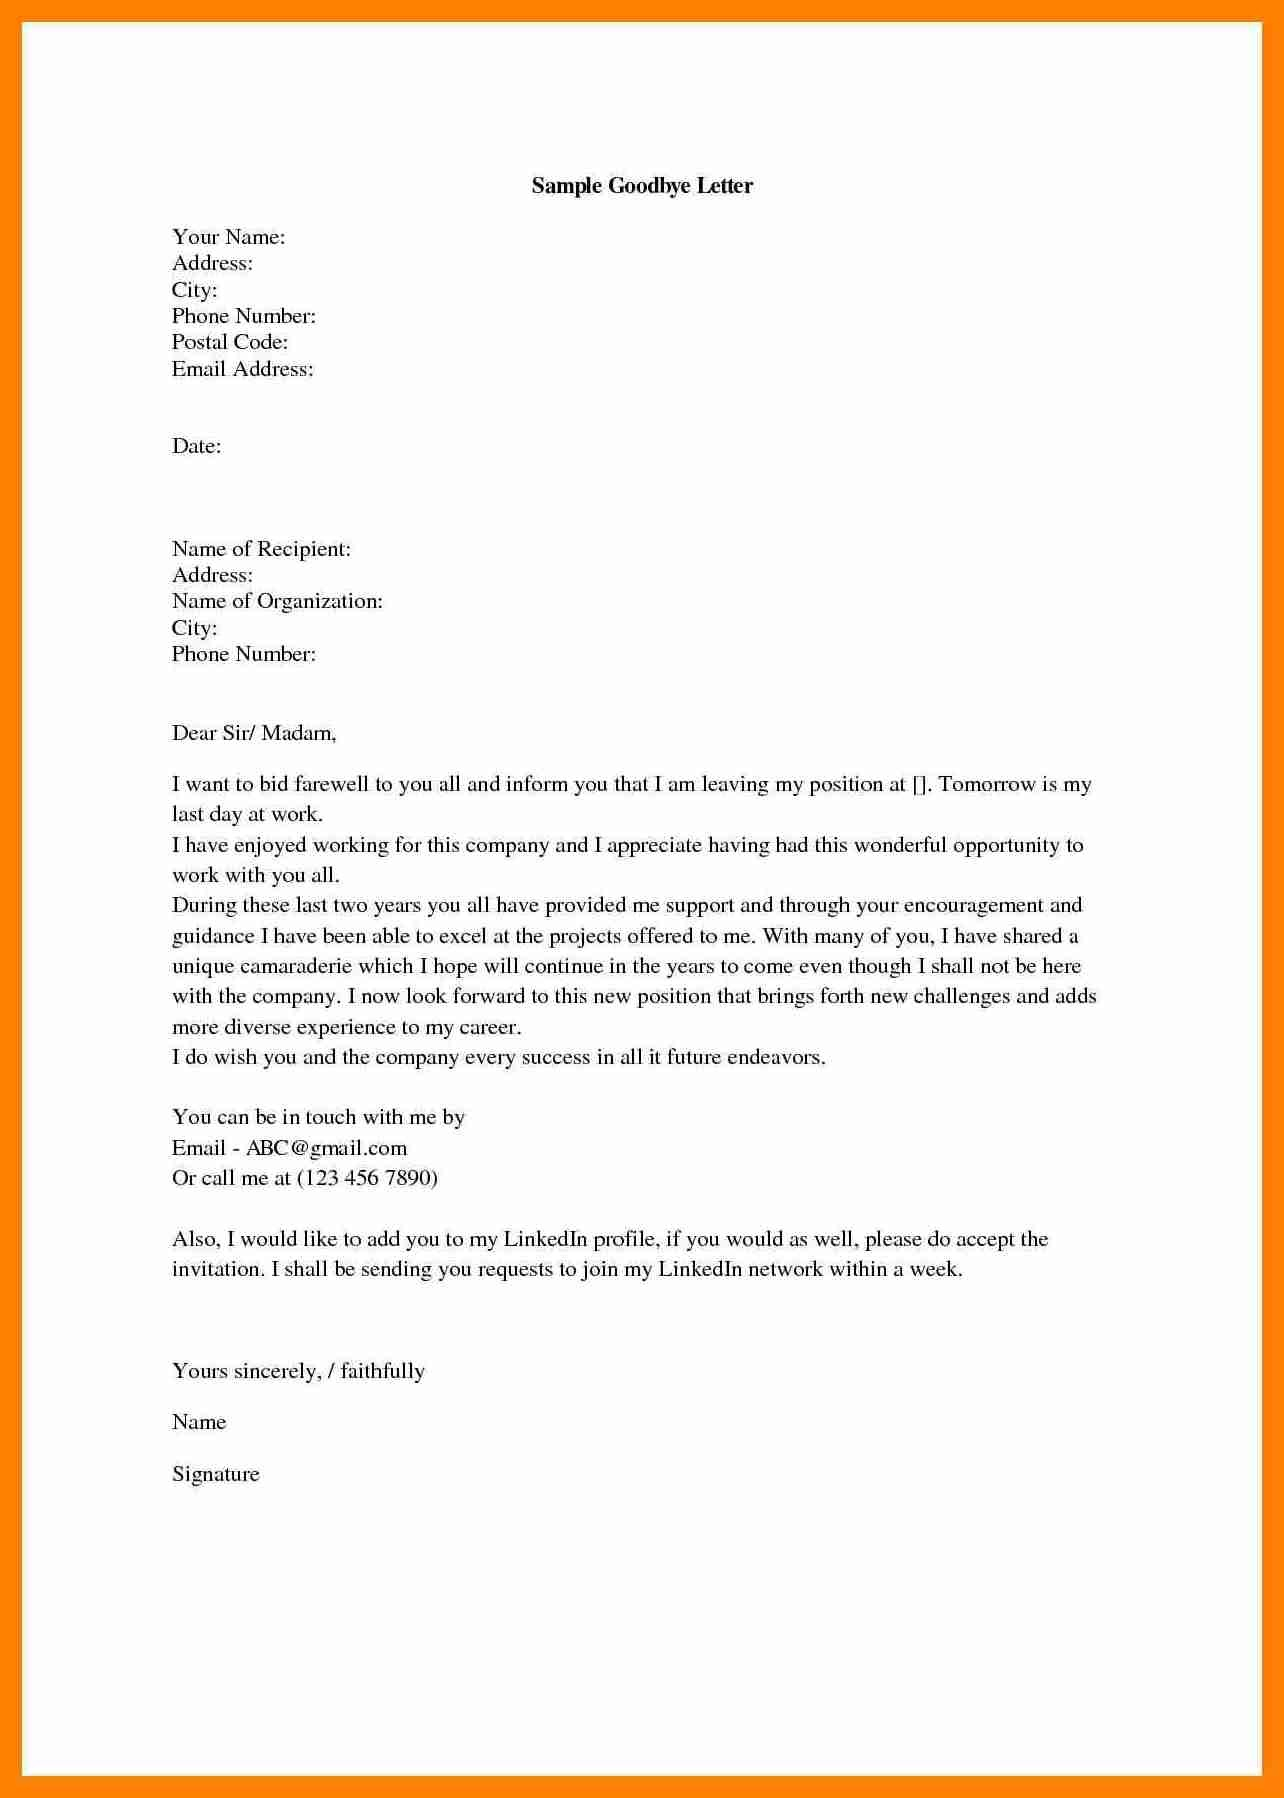 Goodbye Letter to Addiction Template - Sample Goodbye Email to Colleagues at Work Valid Save Best New